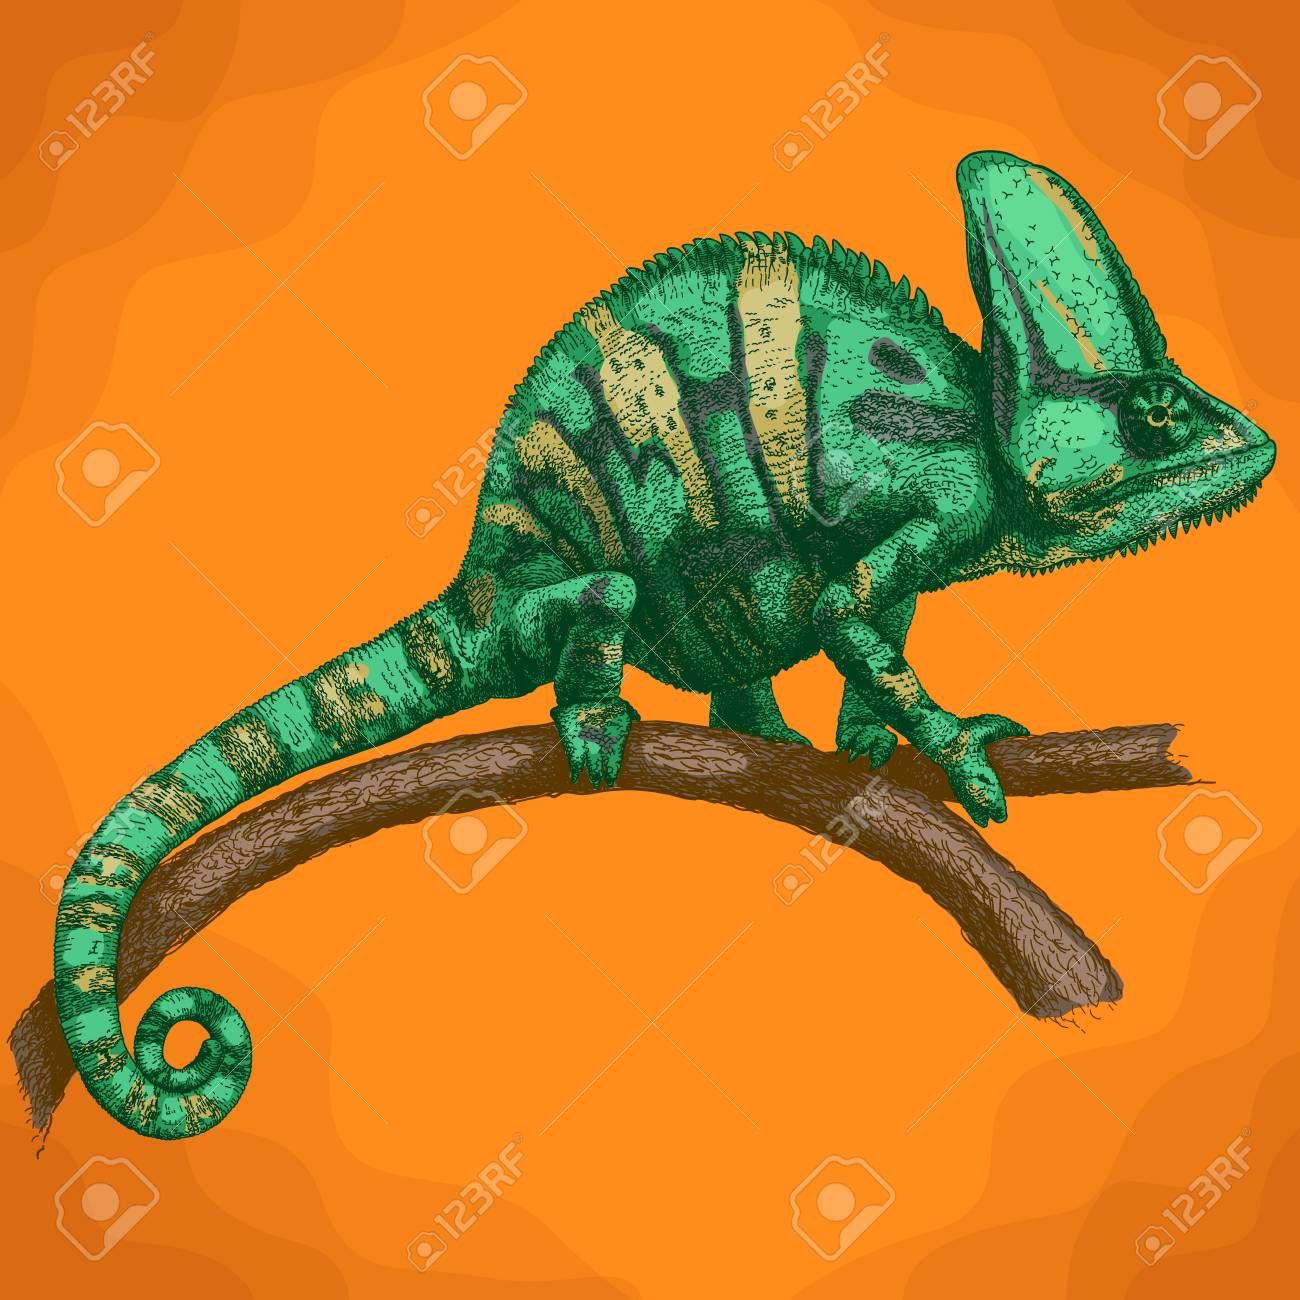 Chameleon Style Vector Antique Engraving Illustration Of Chameleon In Retro Style